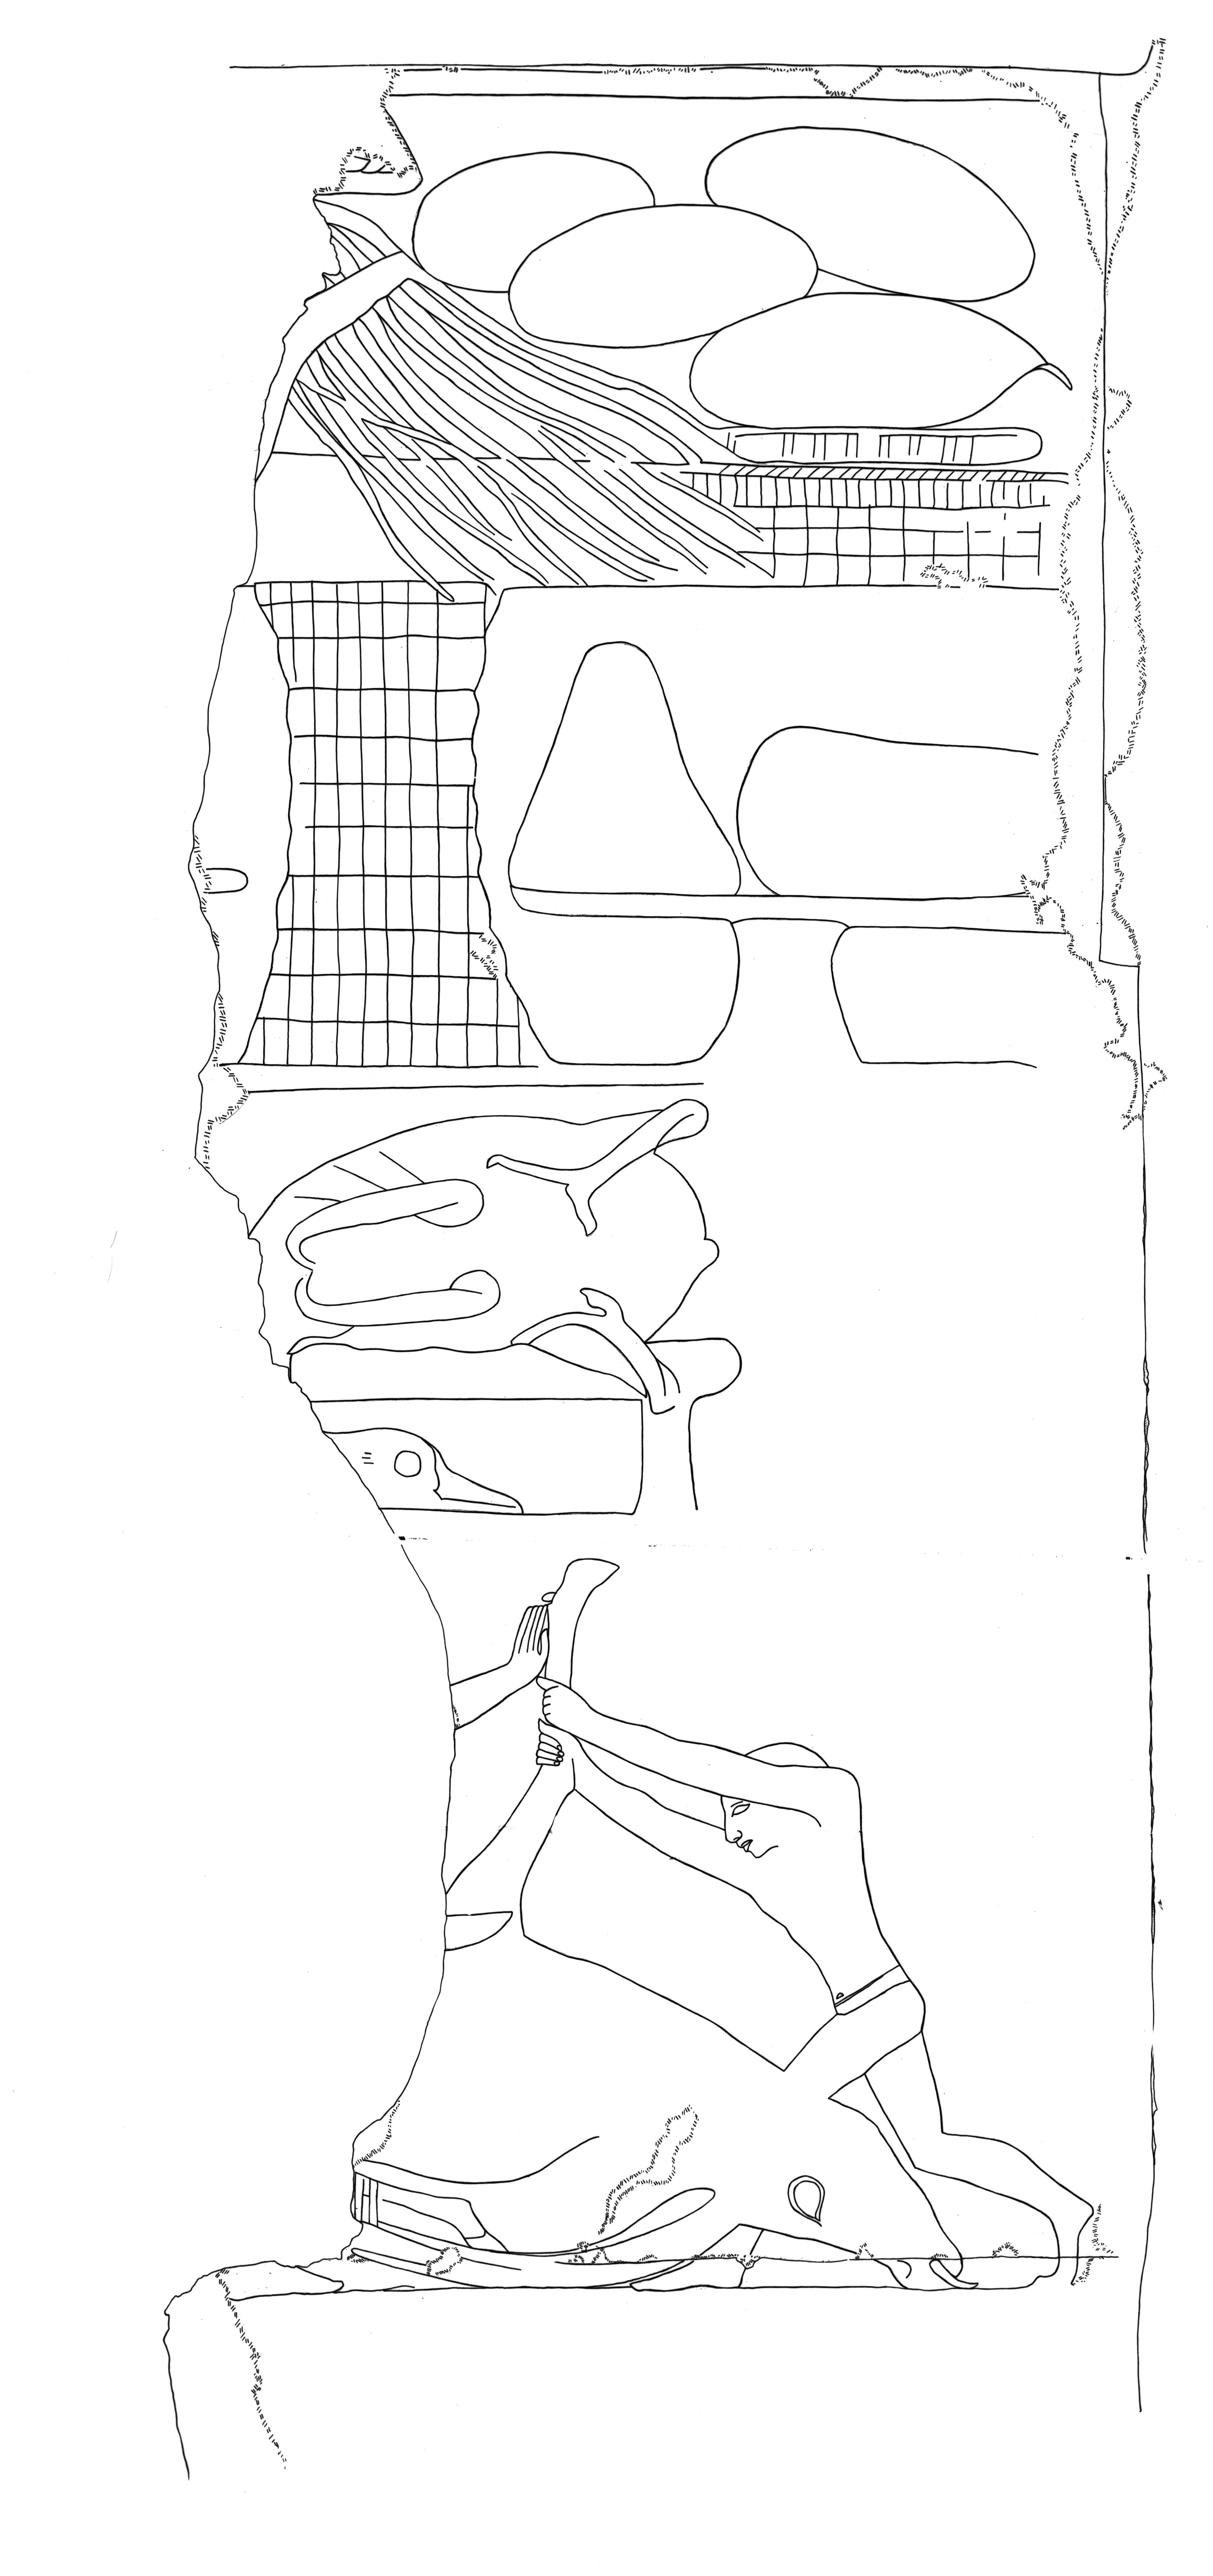 Drawings: G 5110: relief from S wall, offerings